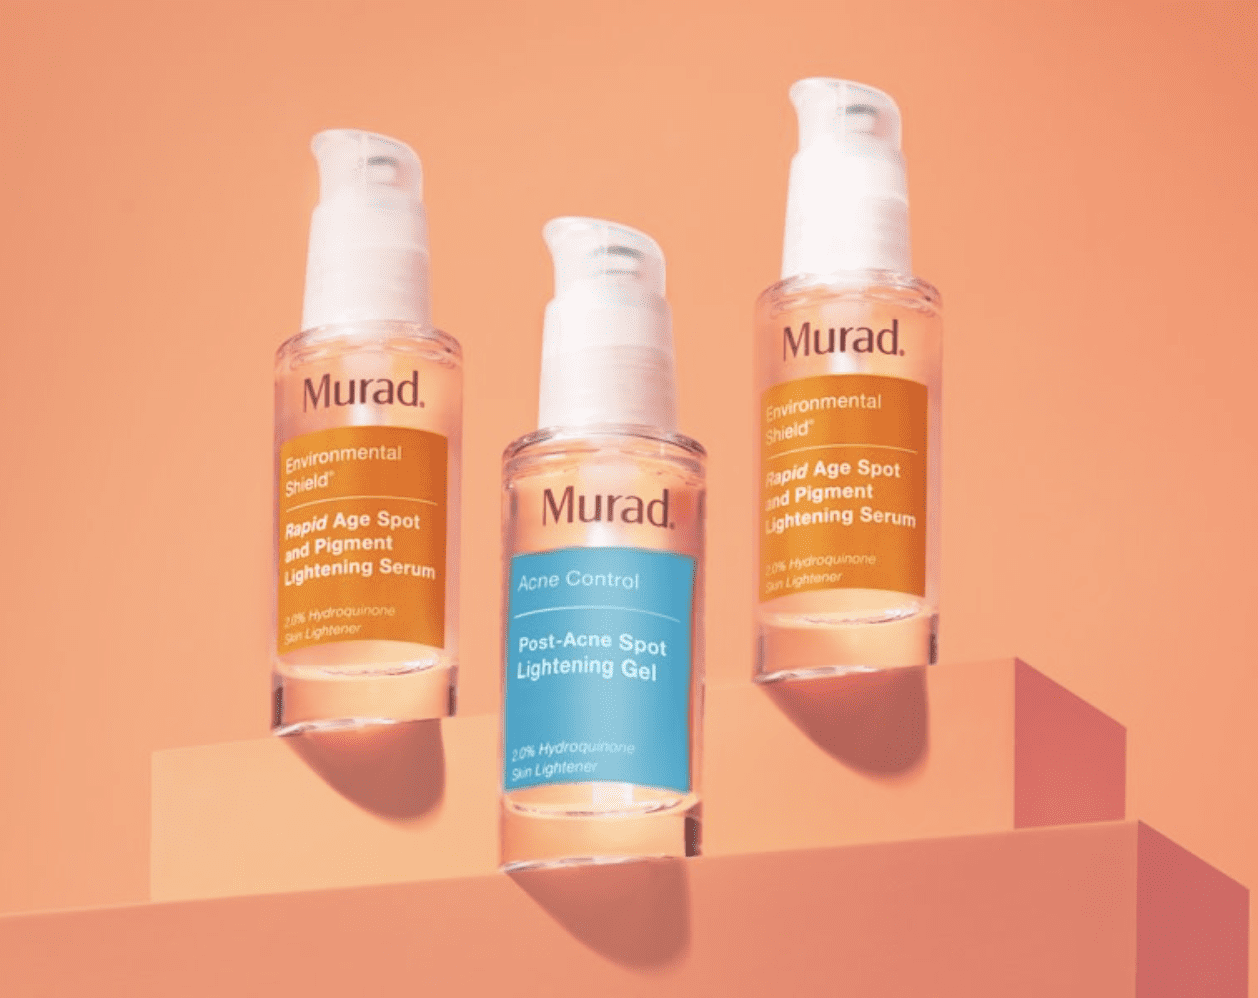 Murad: BOGO Free on select items